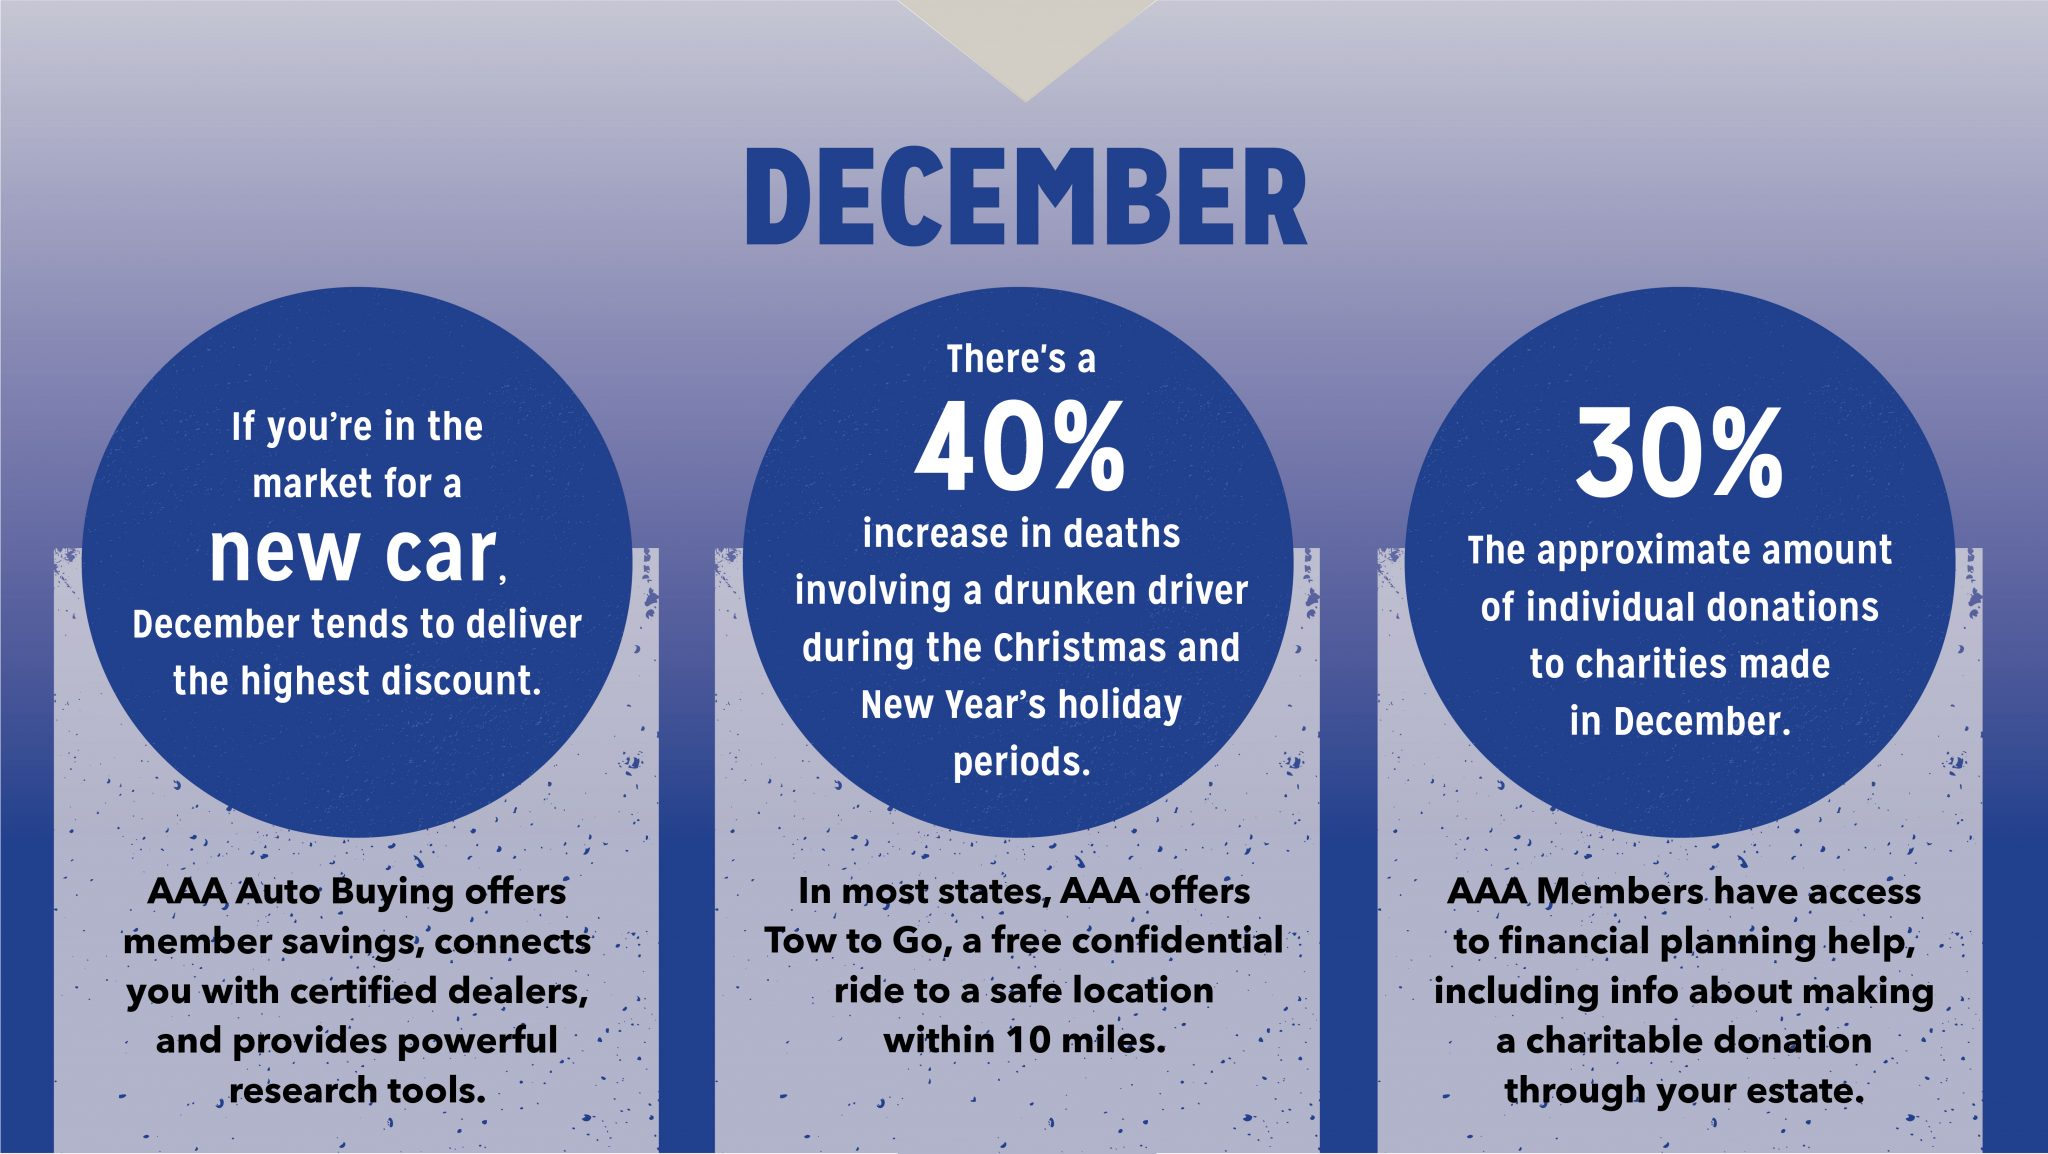 aaa-membership-benefits-december